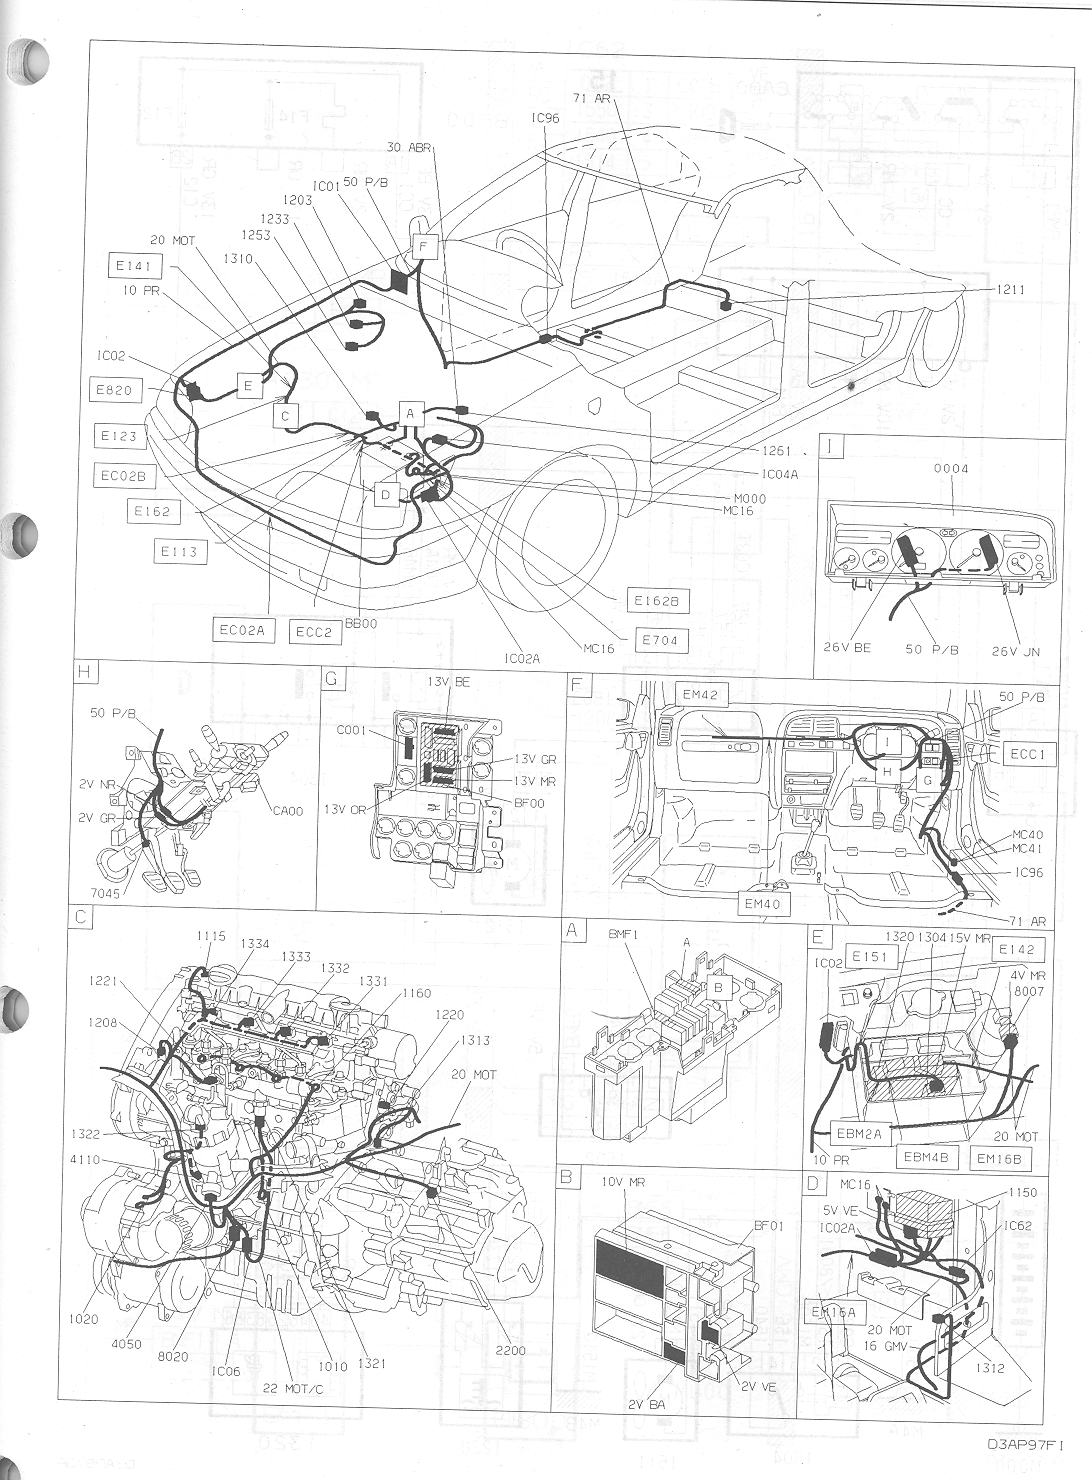 Citroen Ax Wiring Diagram 25 Images Pdf Hdiinjloc Xantia Hdi Ecu Problem French Car Forum At